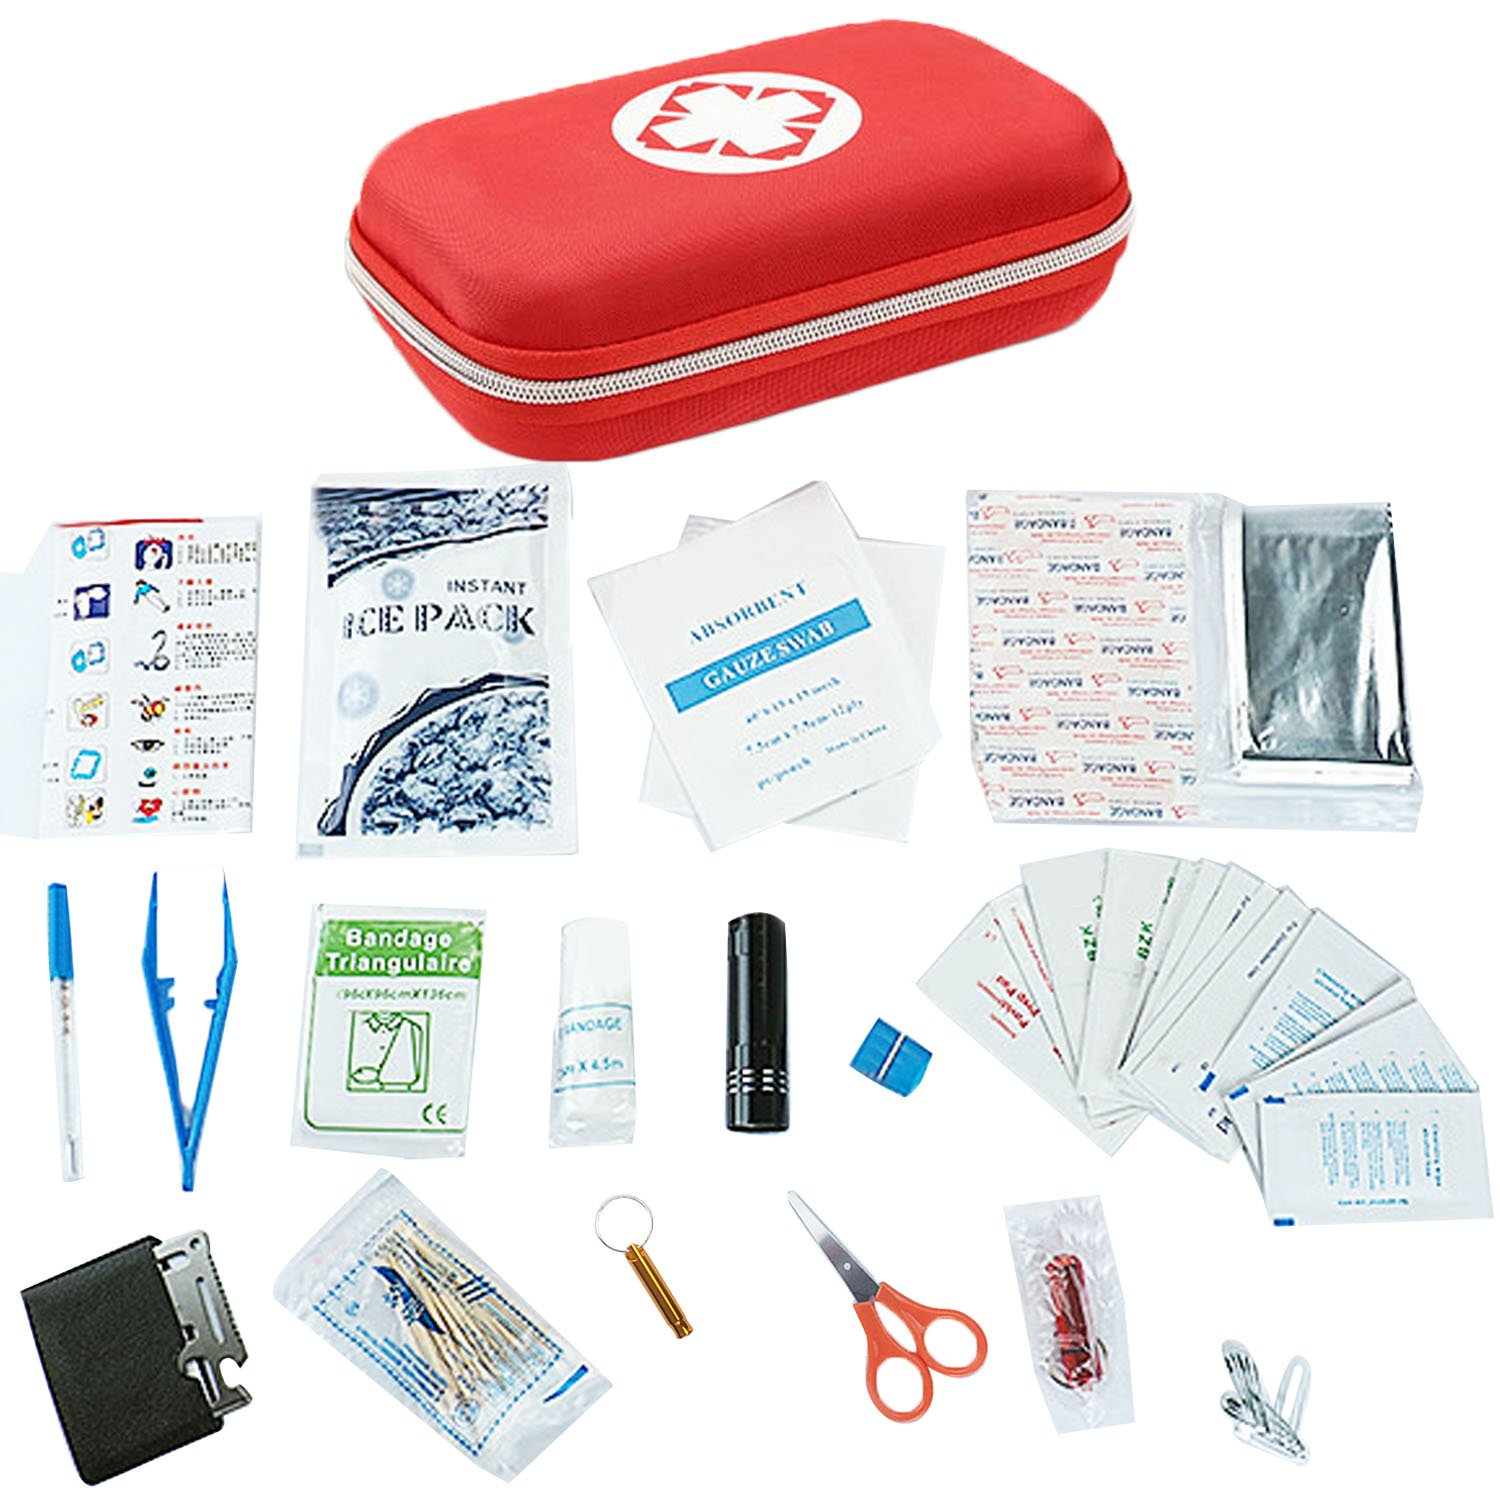 Gosear Portable Complete Mini First Aid Kit Including Cotton Swab Thermometer Alcohol Tablets Mini Flashlight Scissors Emergency Blanket for Home Hiking Camping Exploring Backpacking